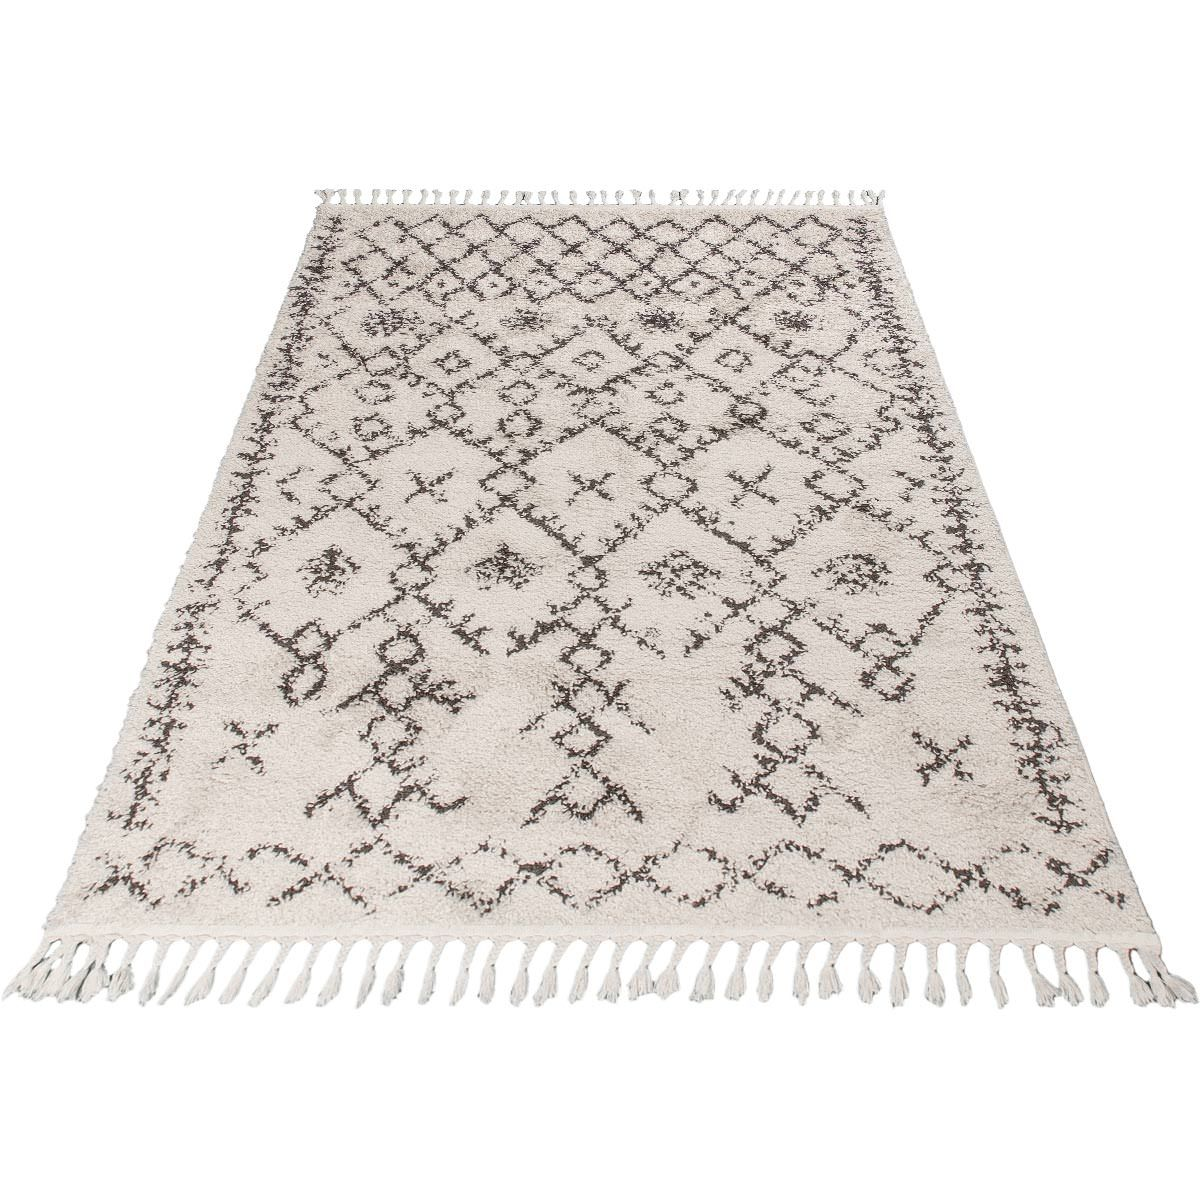 Shaggy Marrakech Rug 06 Cream/Black 5